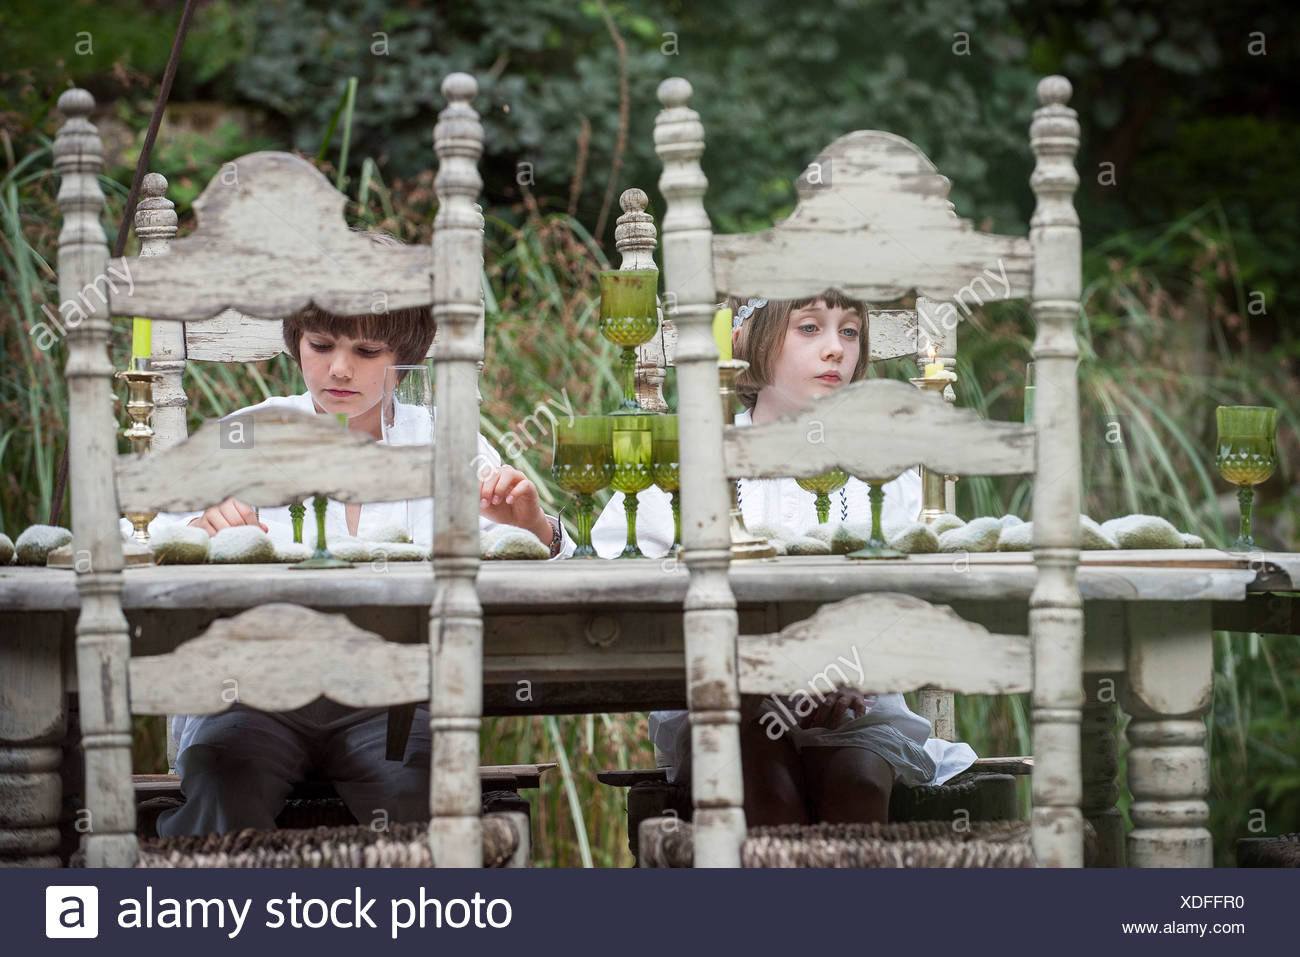 Children seated at dining room table outdoors Stock Photo